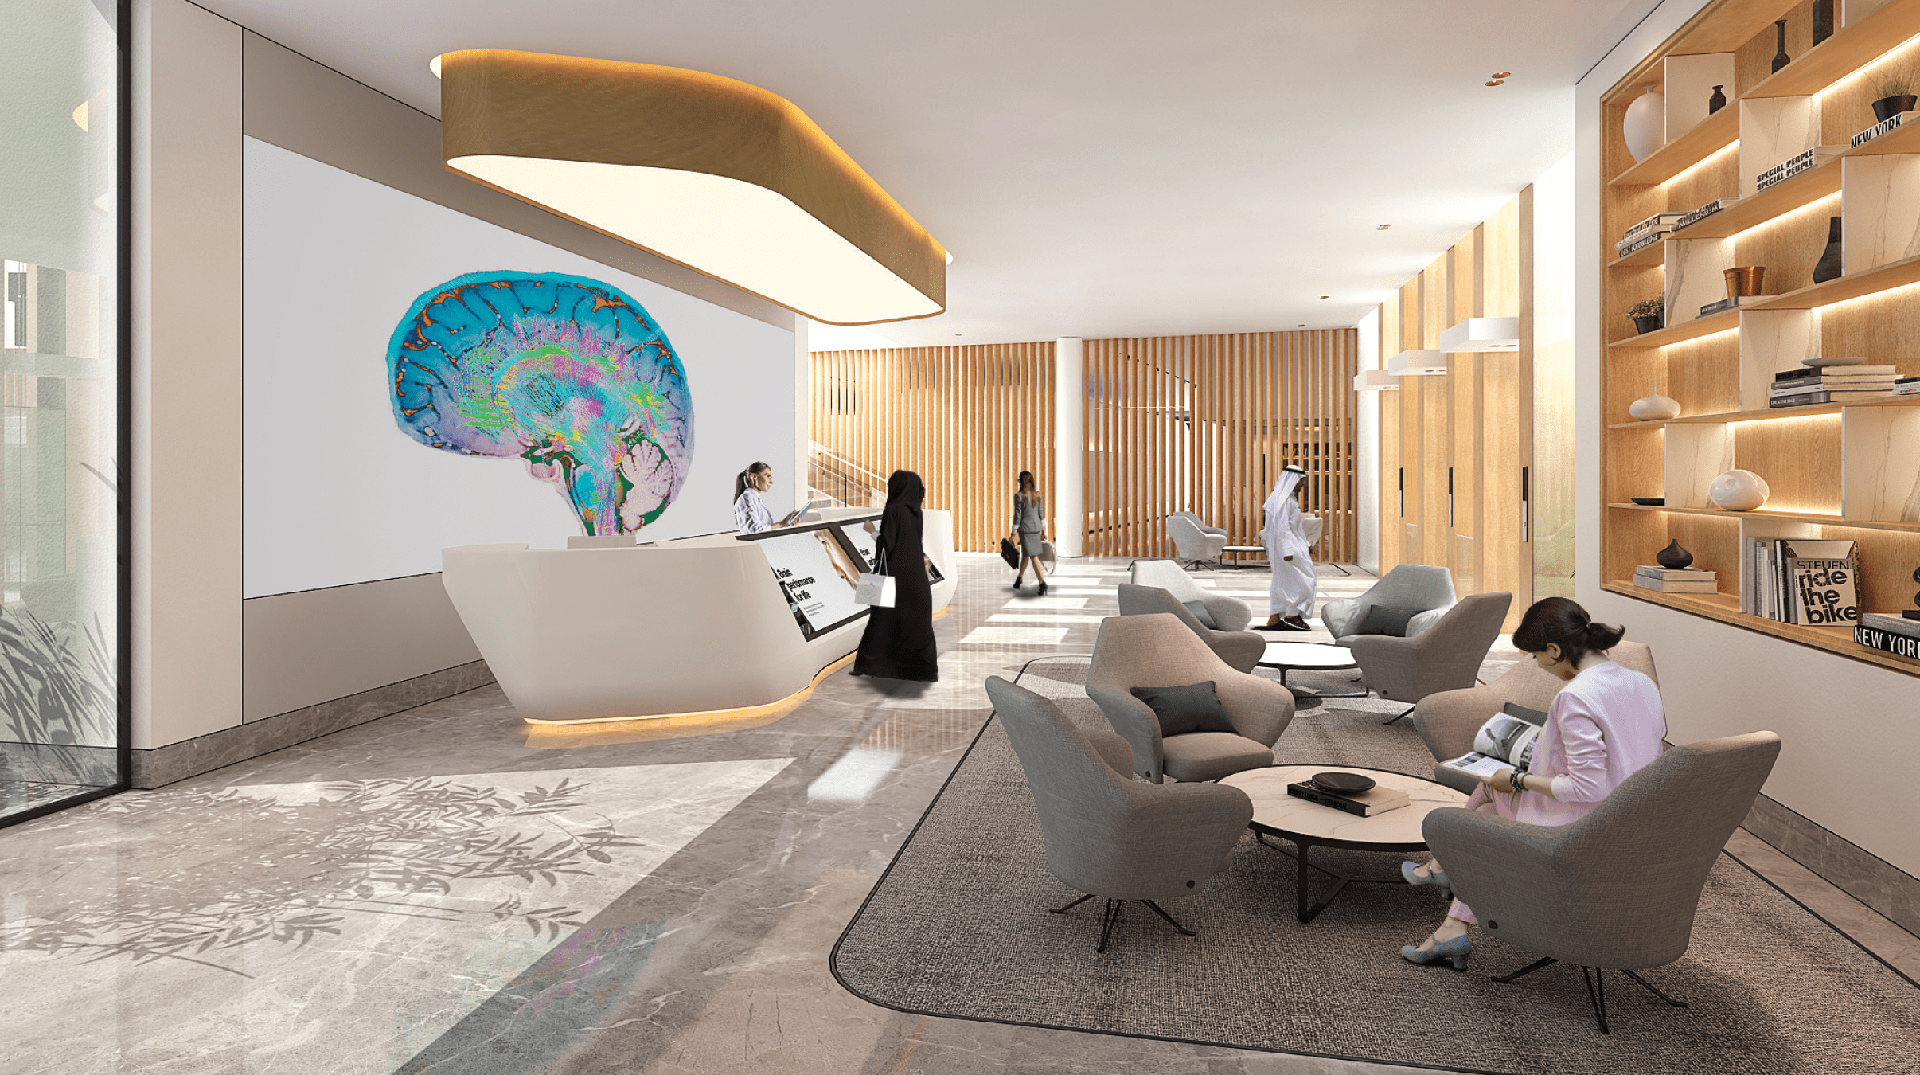 Interior perspective views for DP World Specialty Clinic Ground Plus 2 Floors, in partnership with Dubai Healthcare City.